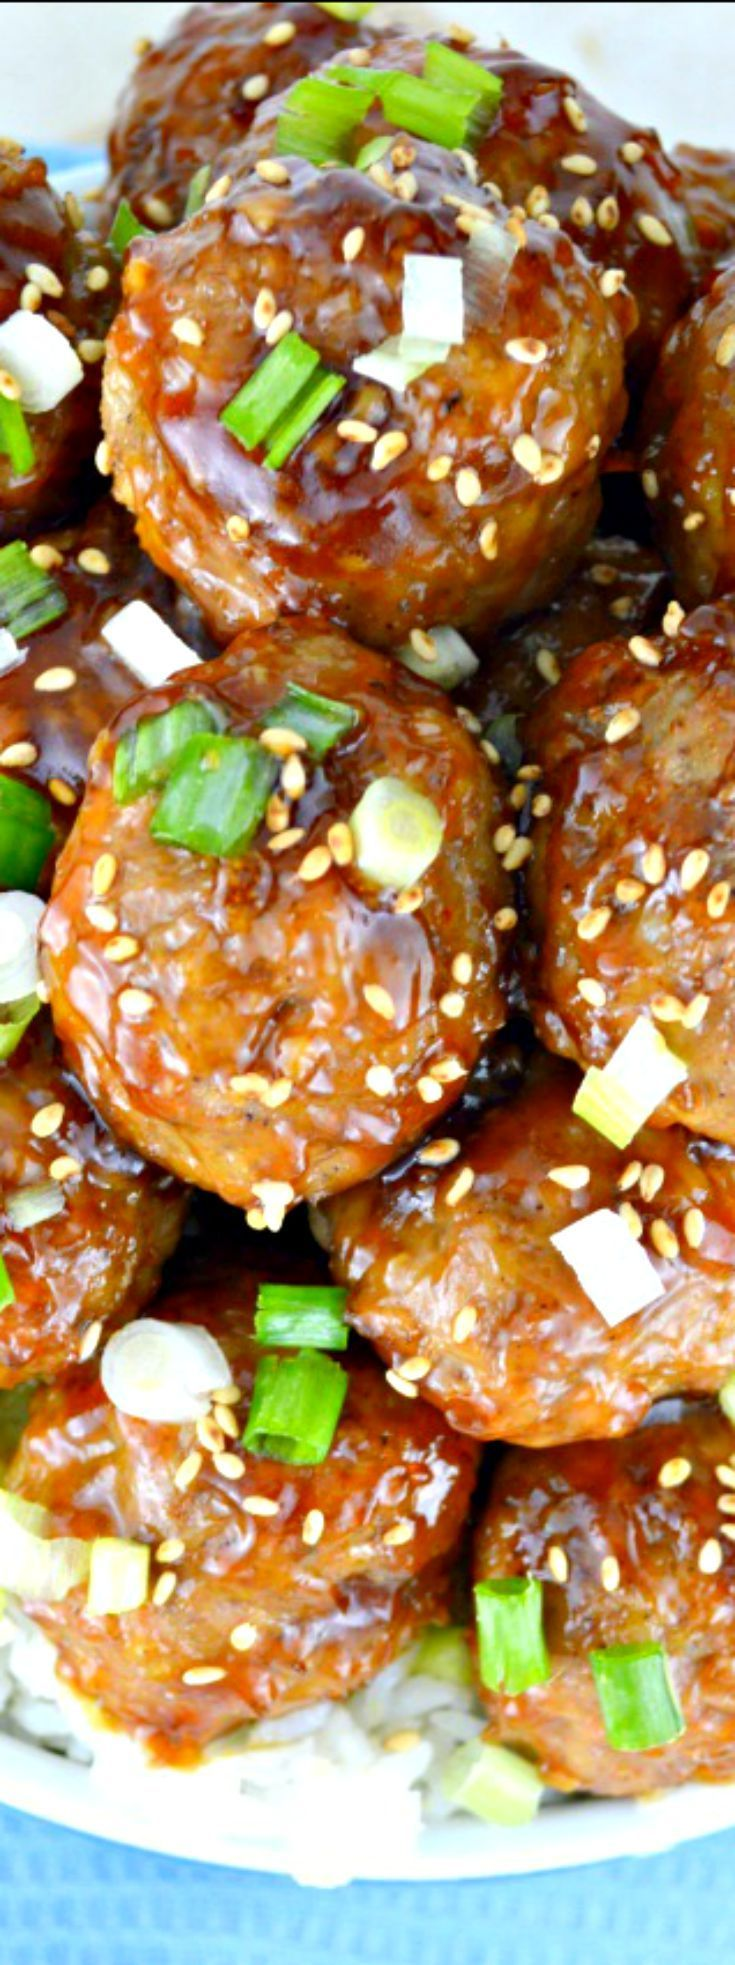 Teriyaki Meatballs- these are super easy and crazy delicious! Great spices and a generous yummy, homemade sauce. Great as an appetizer or equally wonderful as a main course!